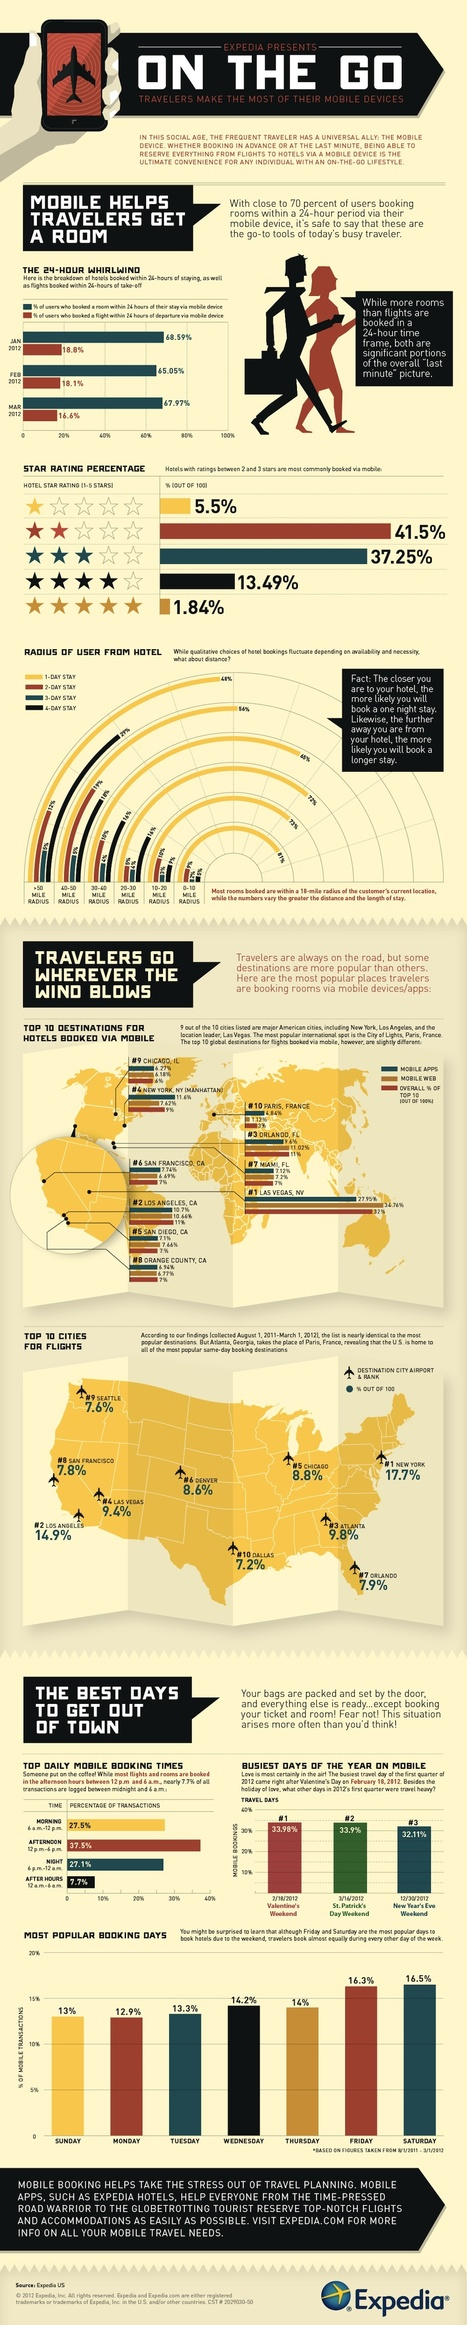 How Mobile Tech Is Changing Travel [INFOGRAPHIC] | Social Media and Web Infographics hh | Scoop.it